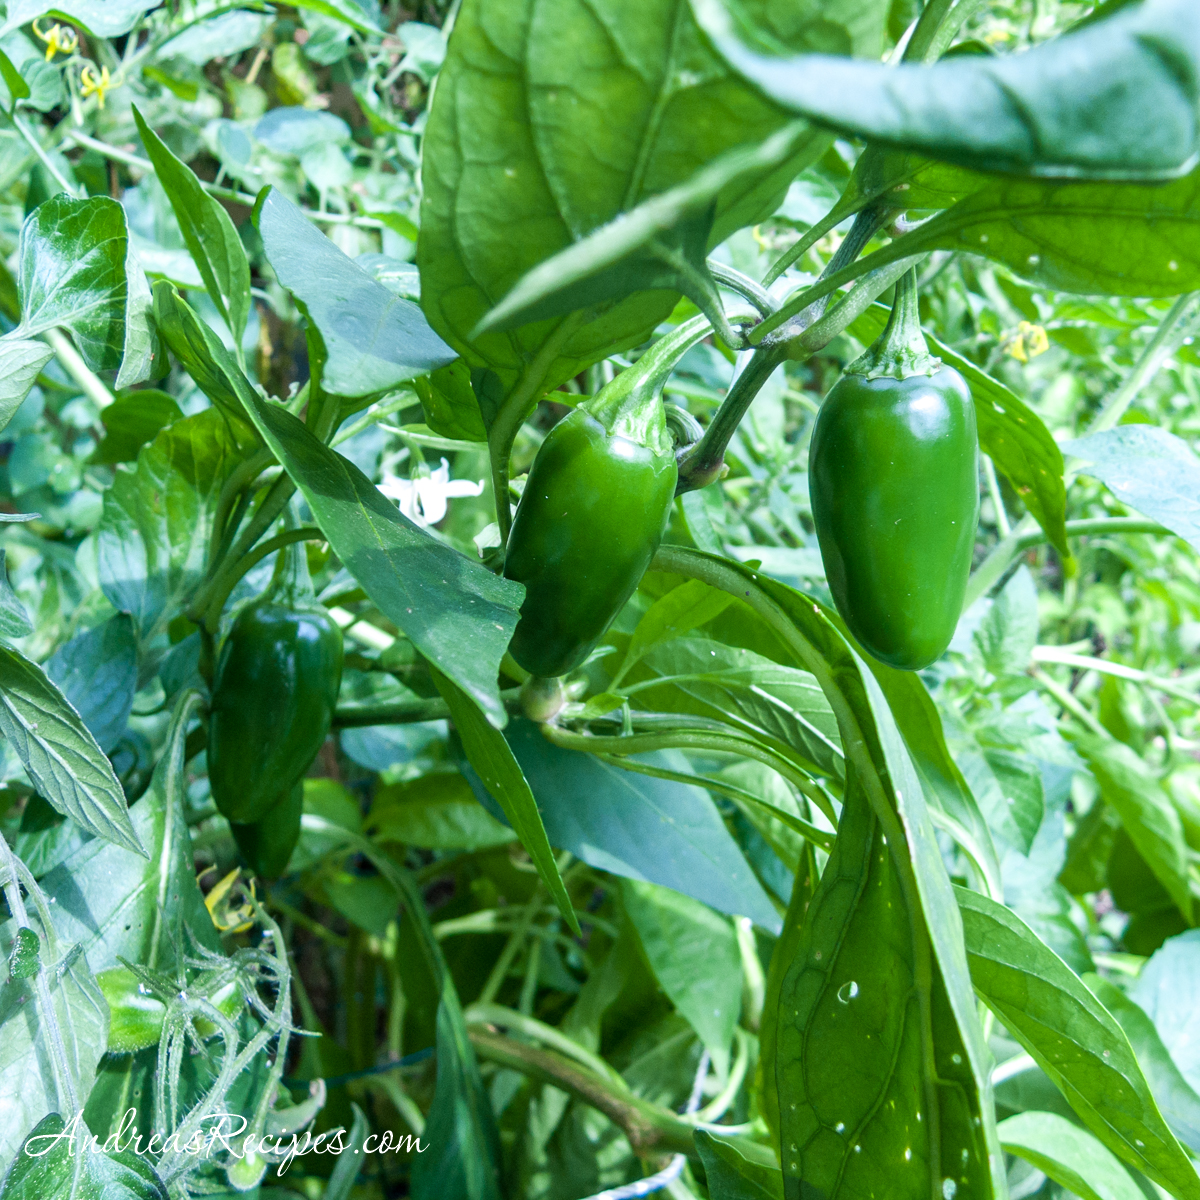 Jalapeño peppers in the garden - Andrea Meyers